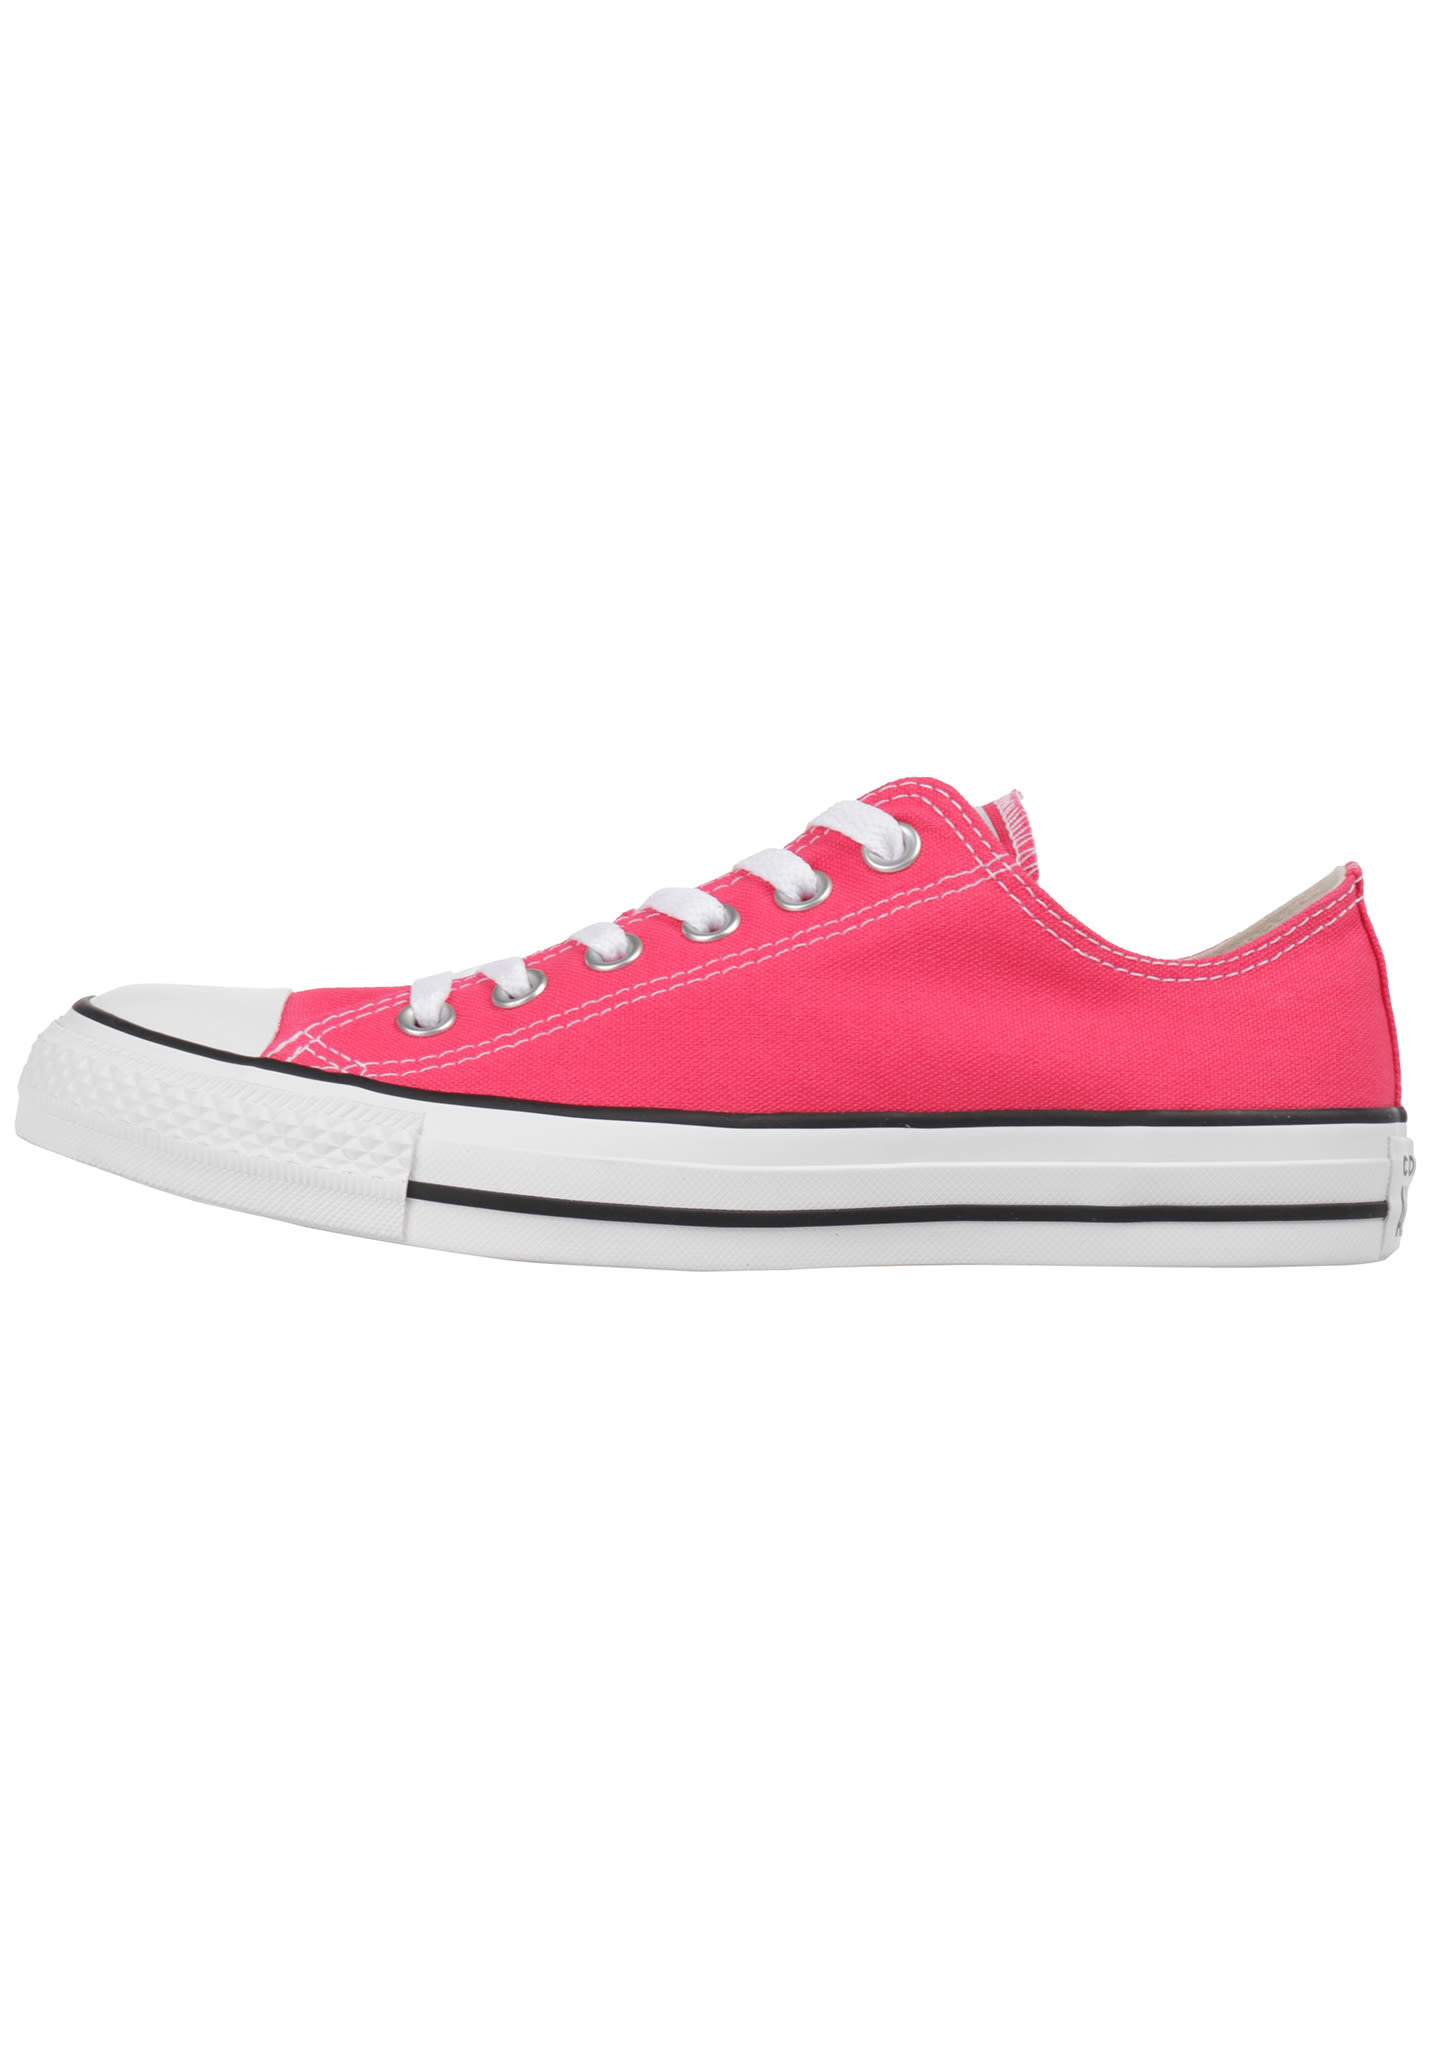 180c267fd701 Converse Chuck Taylor All Star Ox - Sneakers for Women - Red - Planet Sports